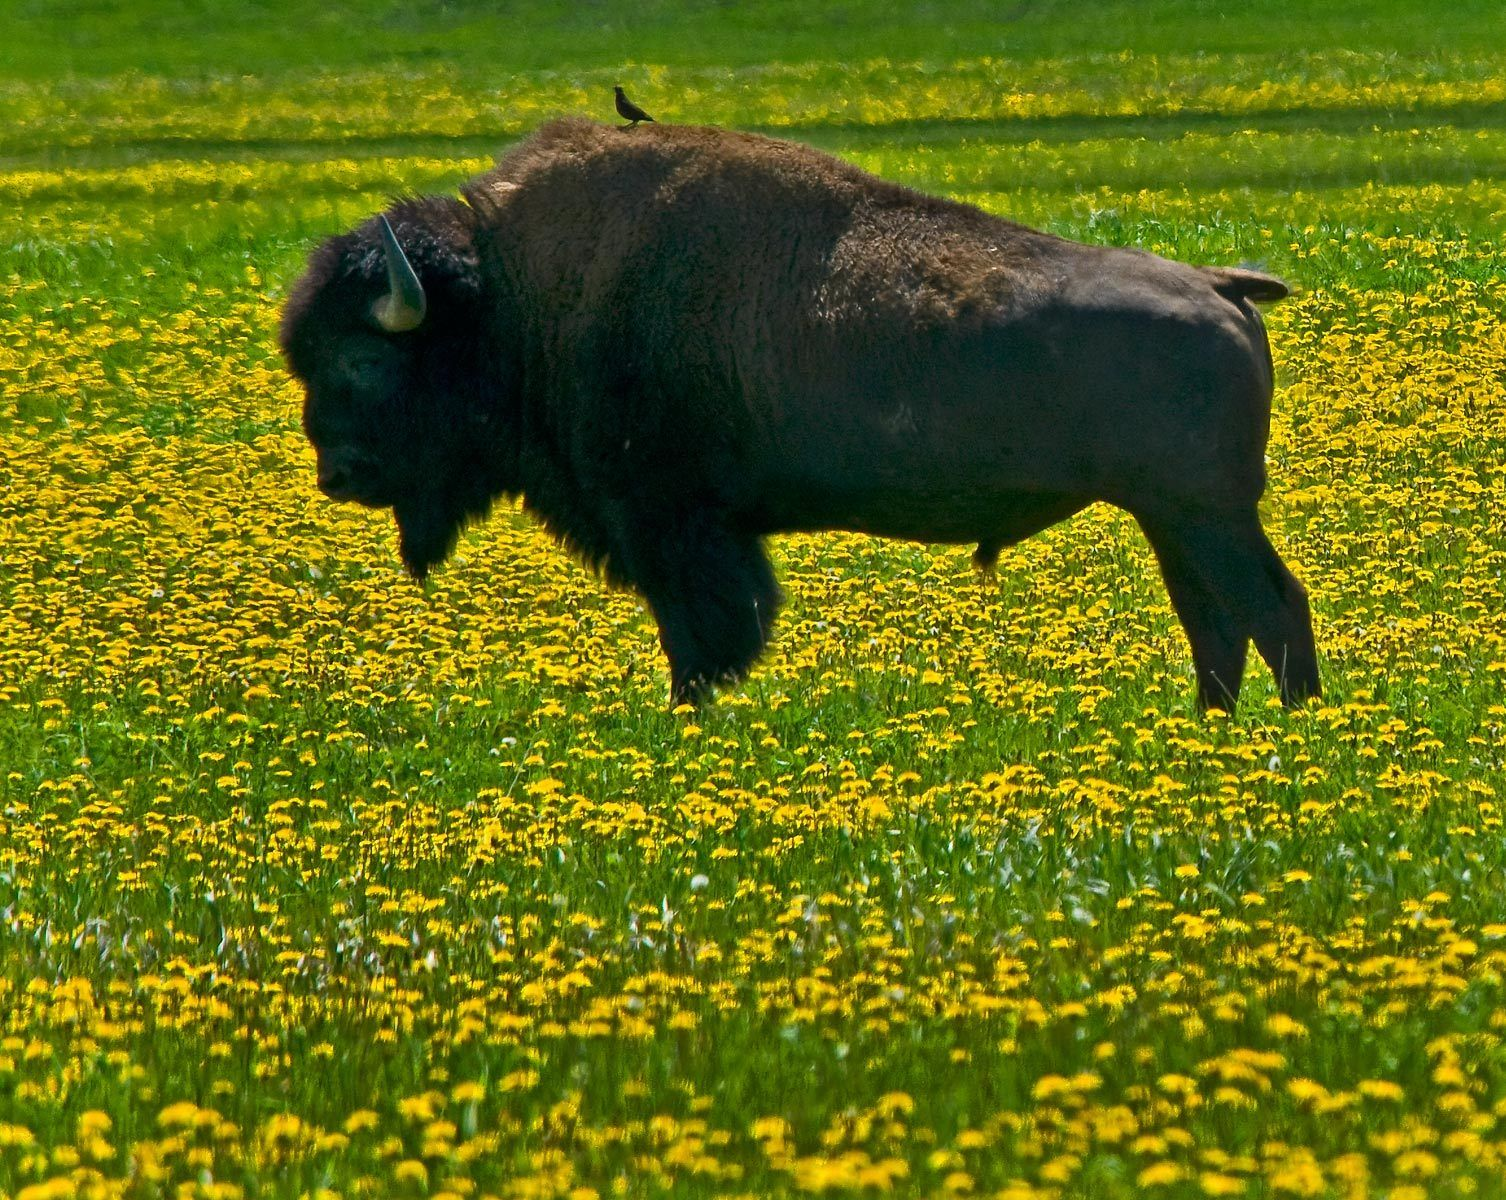 1bison_wildflowers2.jpg